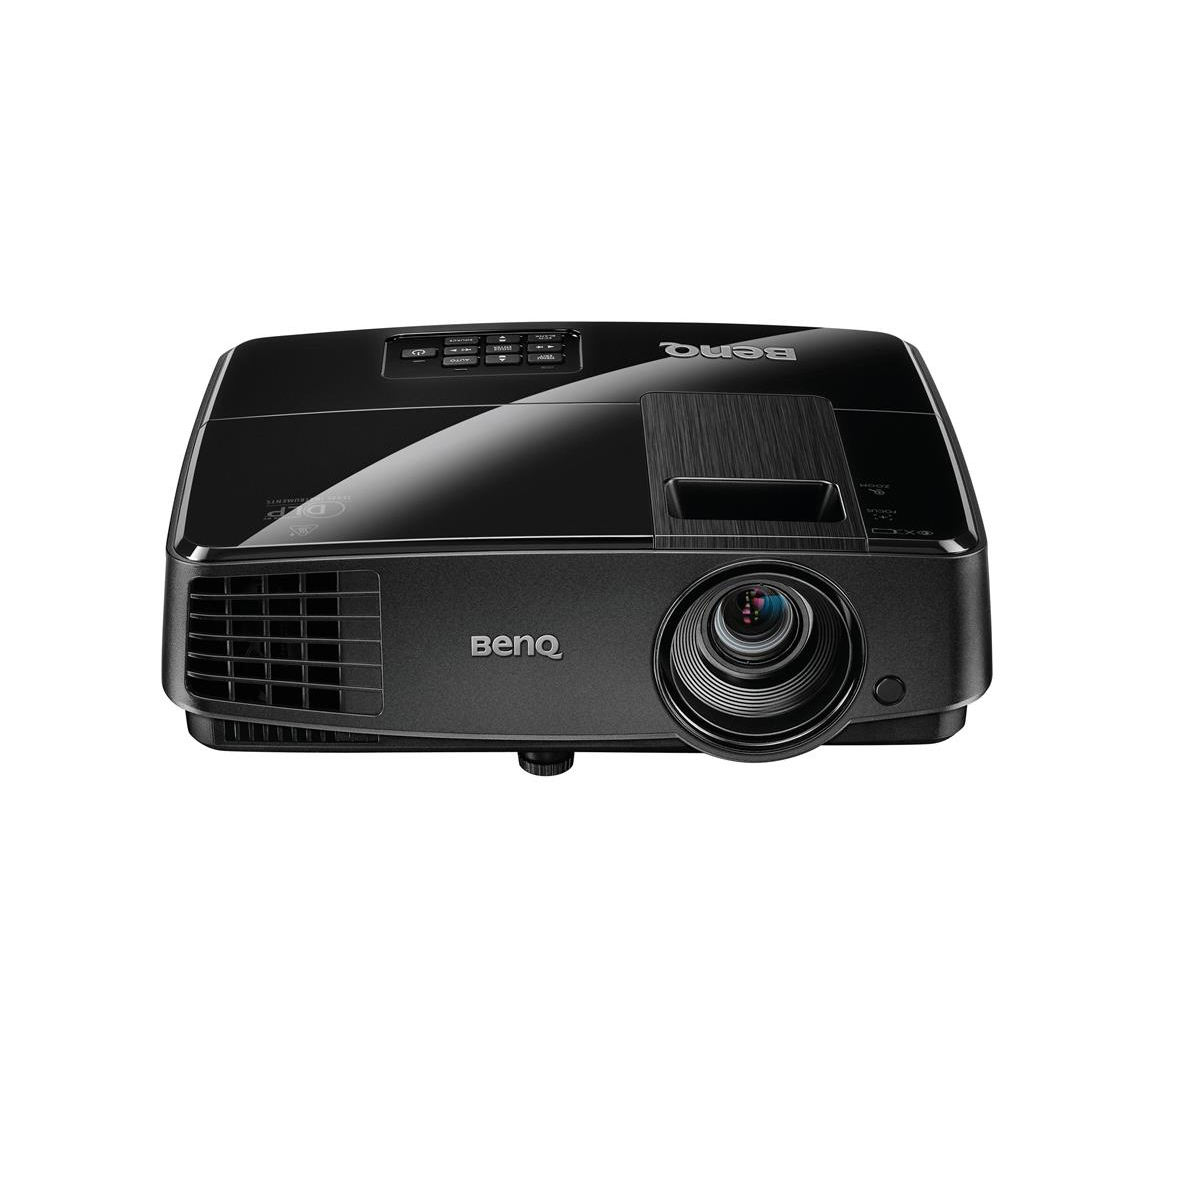 BenQ MS506 Projector SVGA 3200 ANSI Lumens 13000-1 Contrast Ratio Black Ref MS506